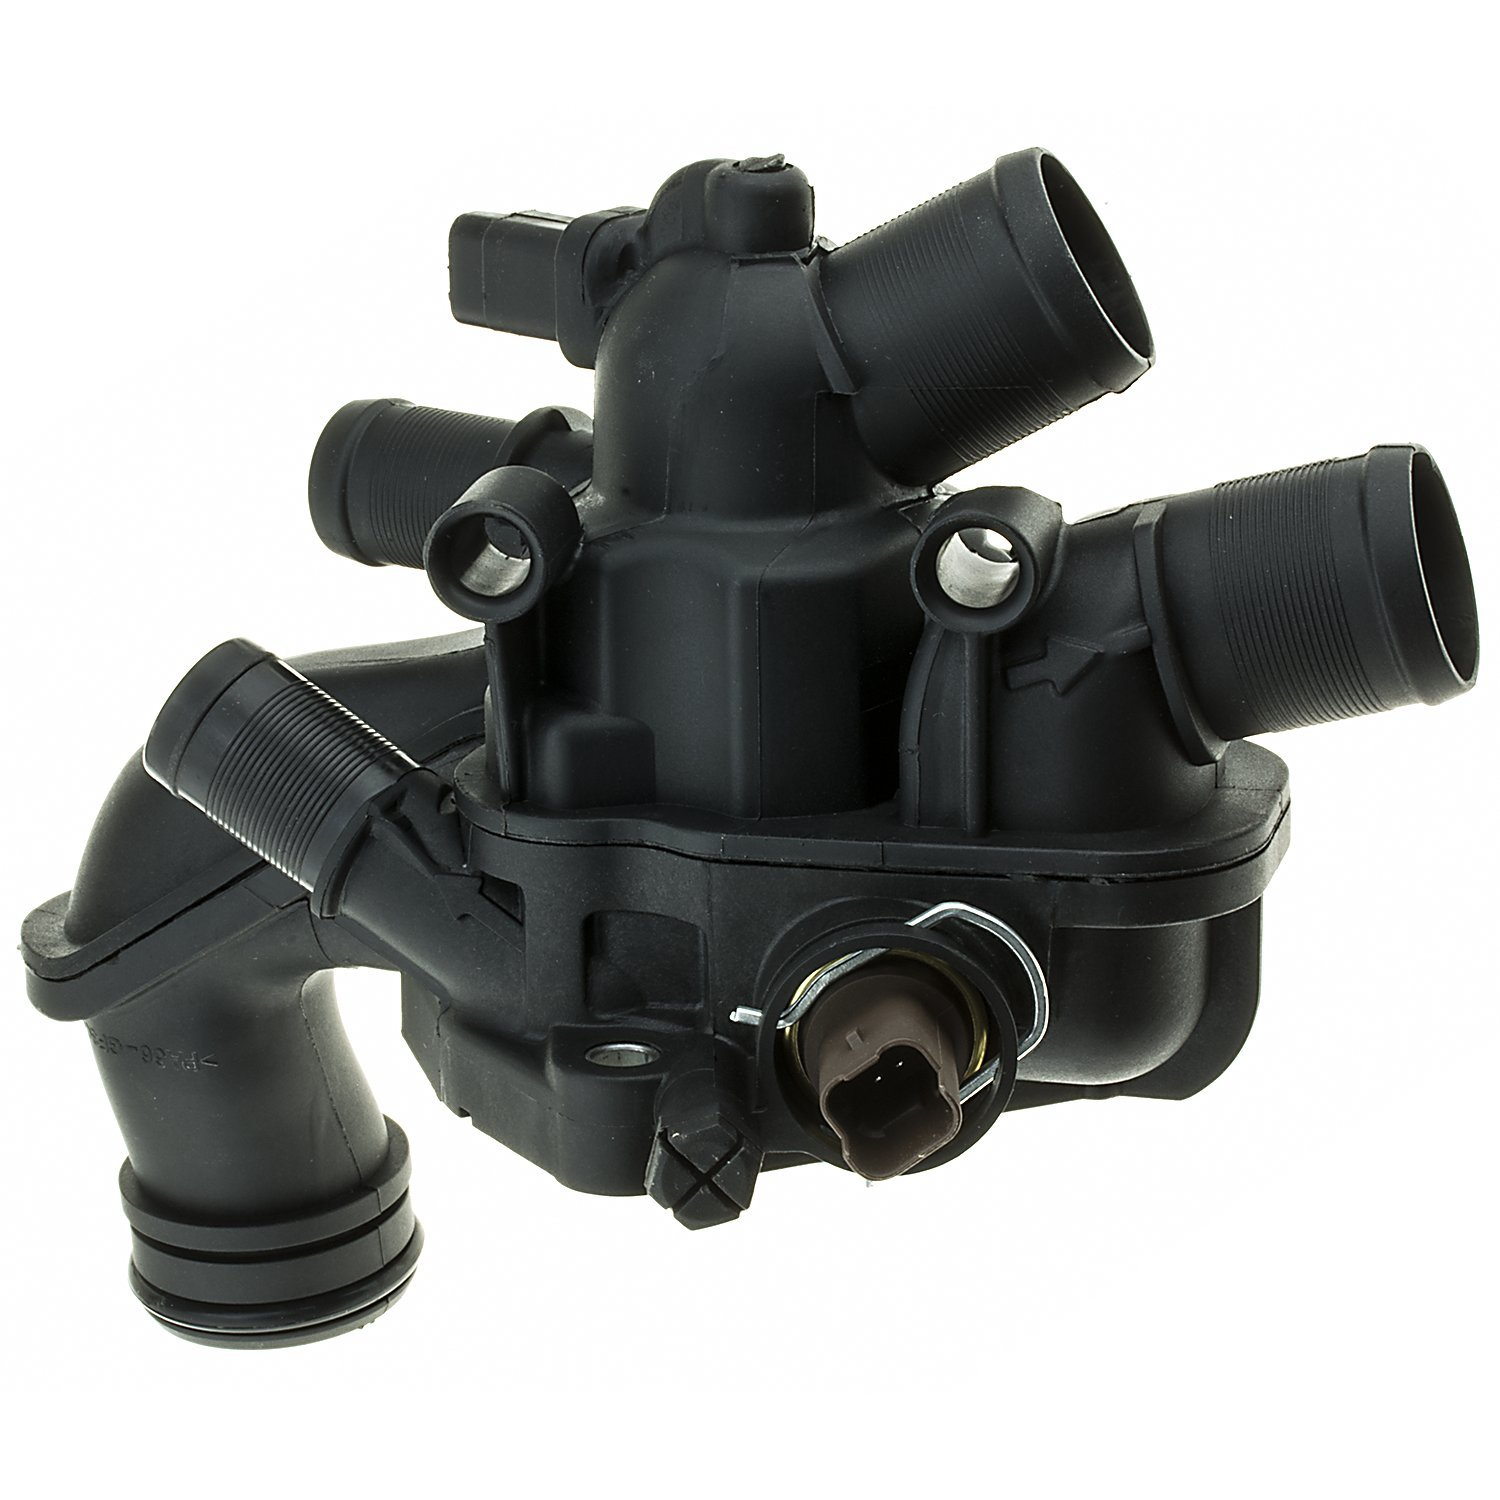 Motorad 678-221 Integrated MAP Controlled Thermostat Housing by MotoRad